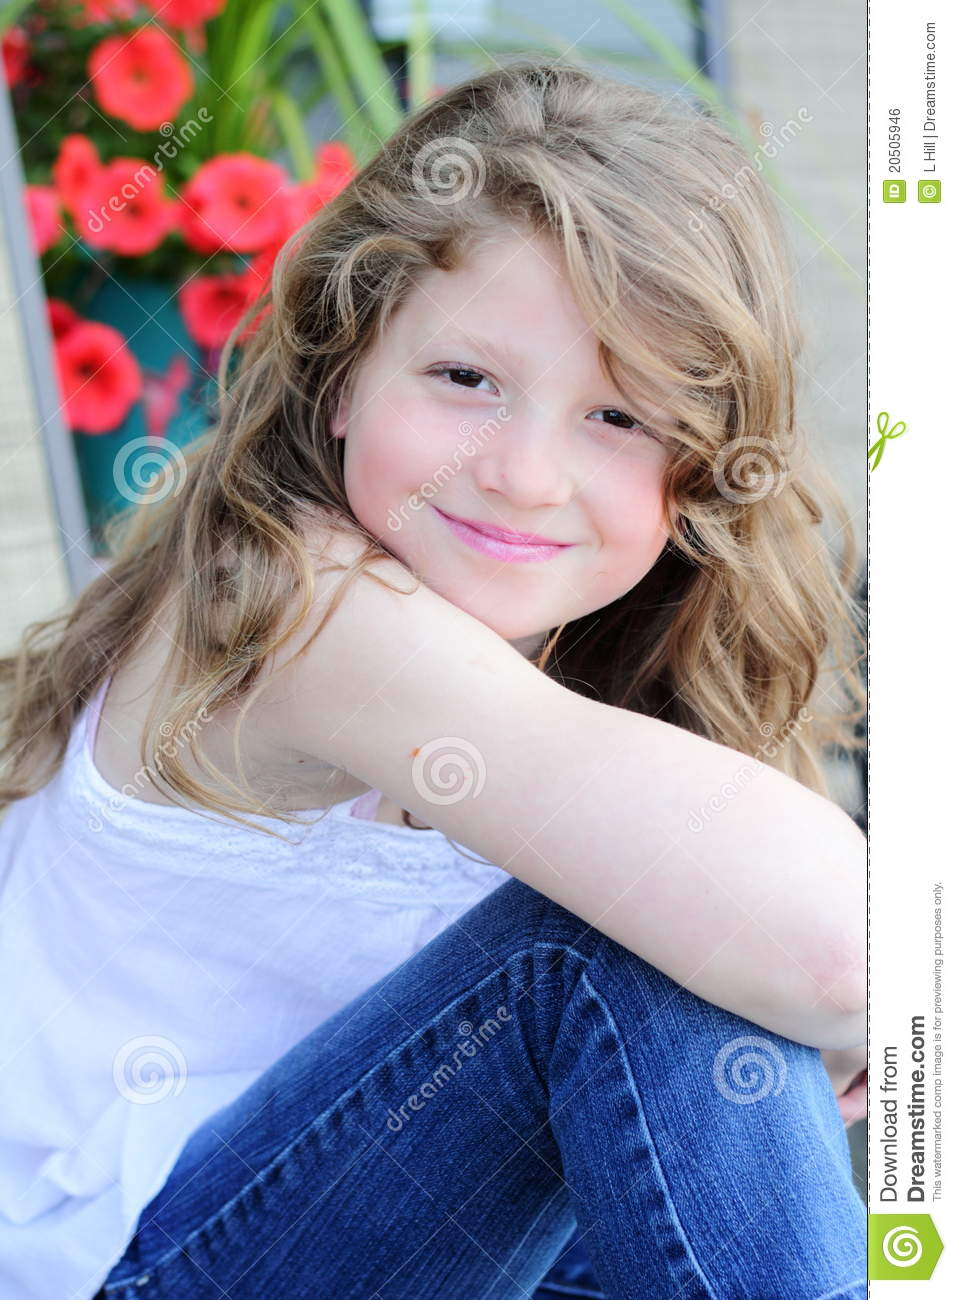 Pretty preteen girl with long blond hair, shallow depth of field.